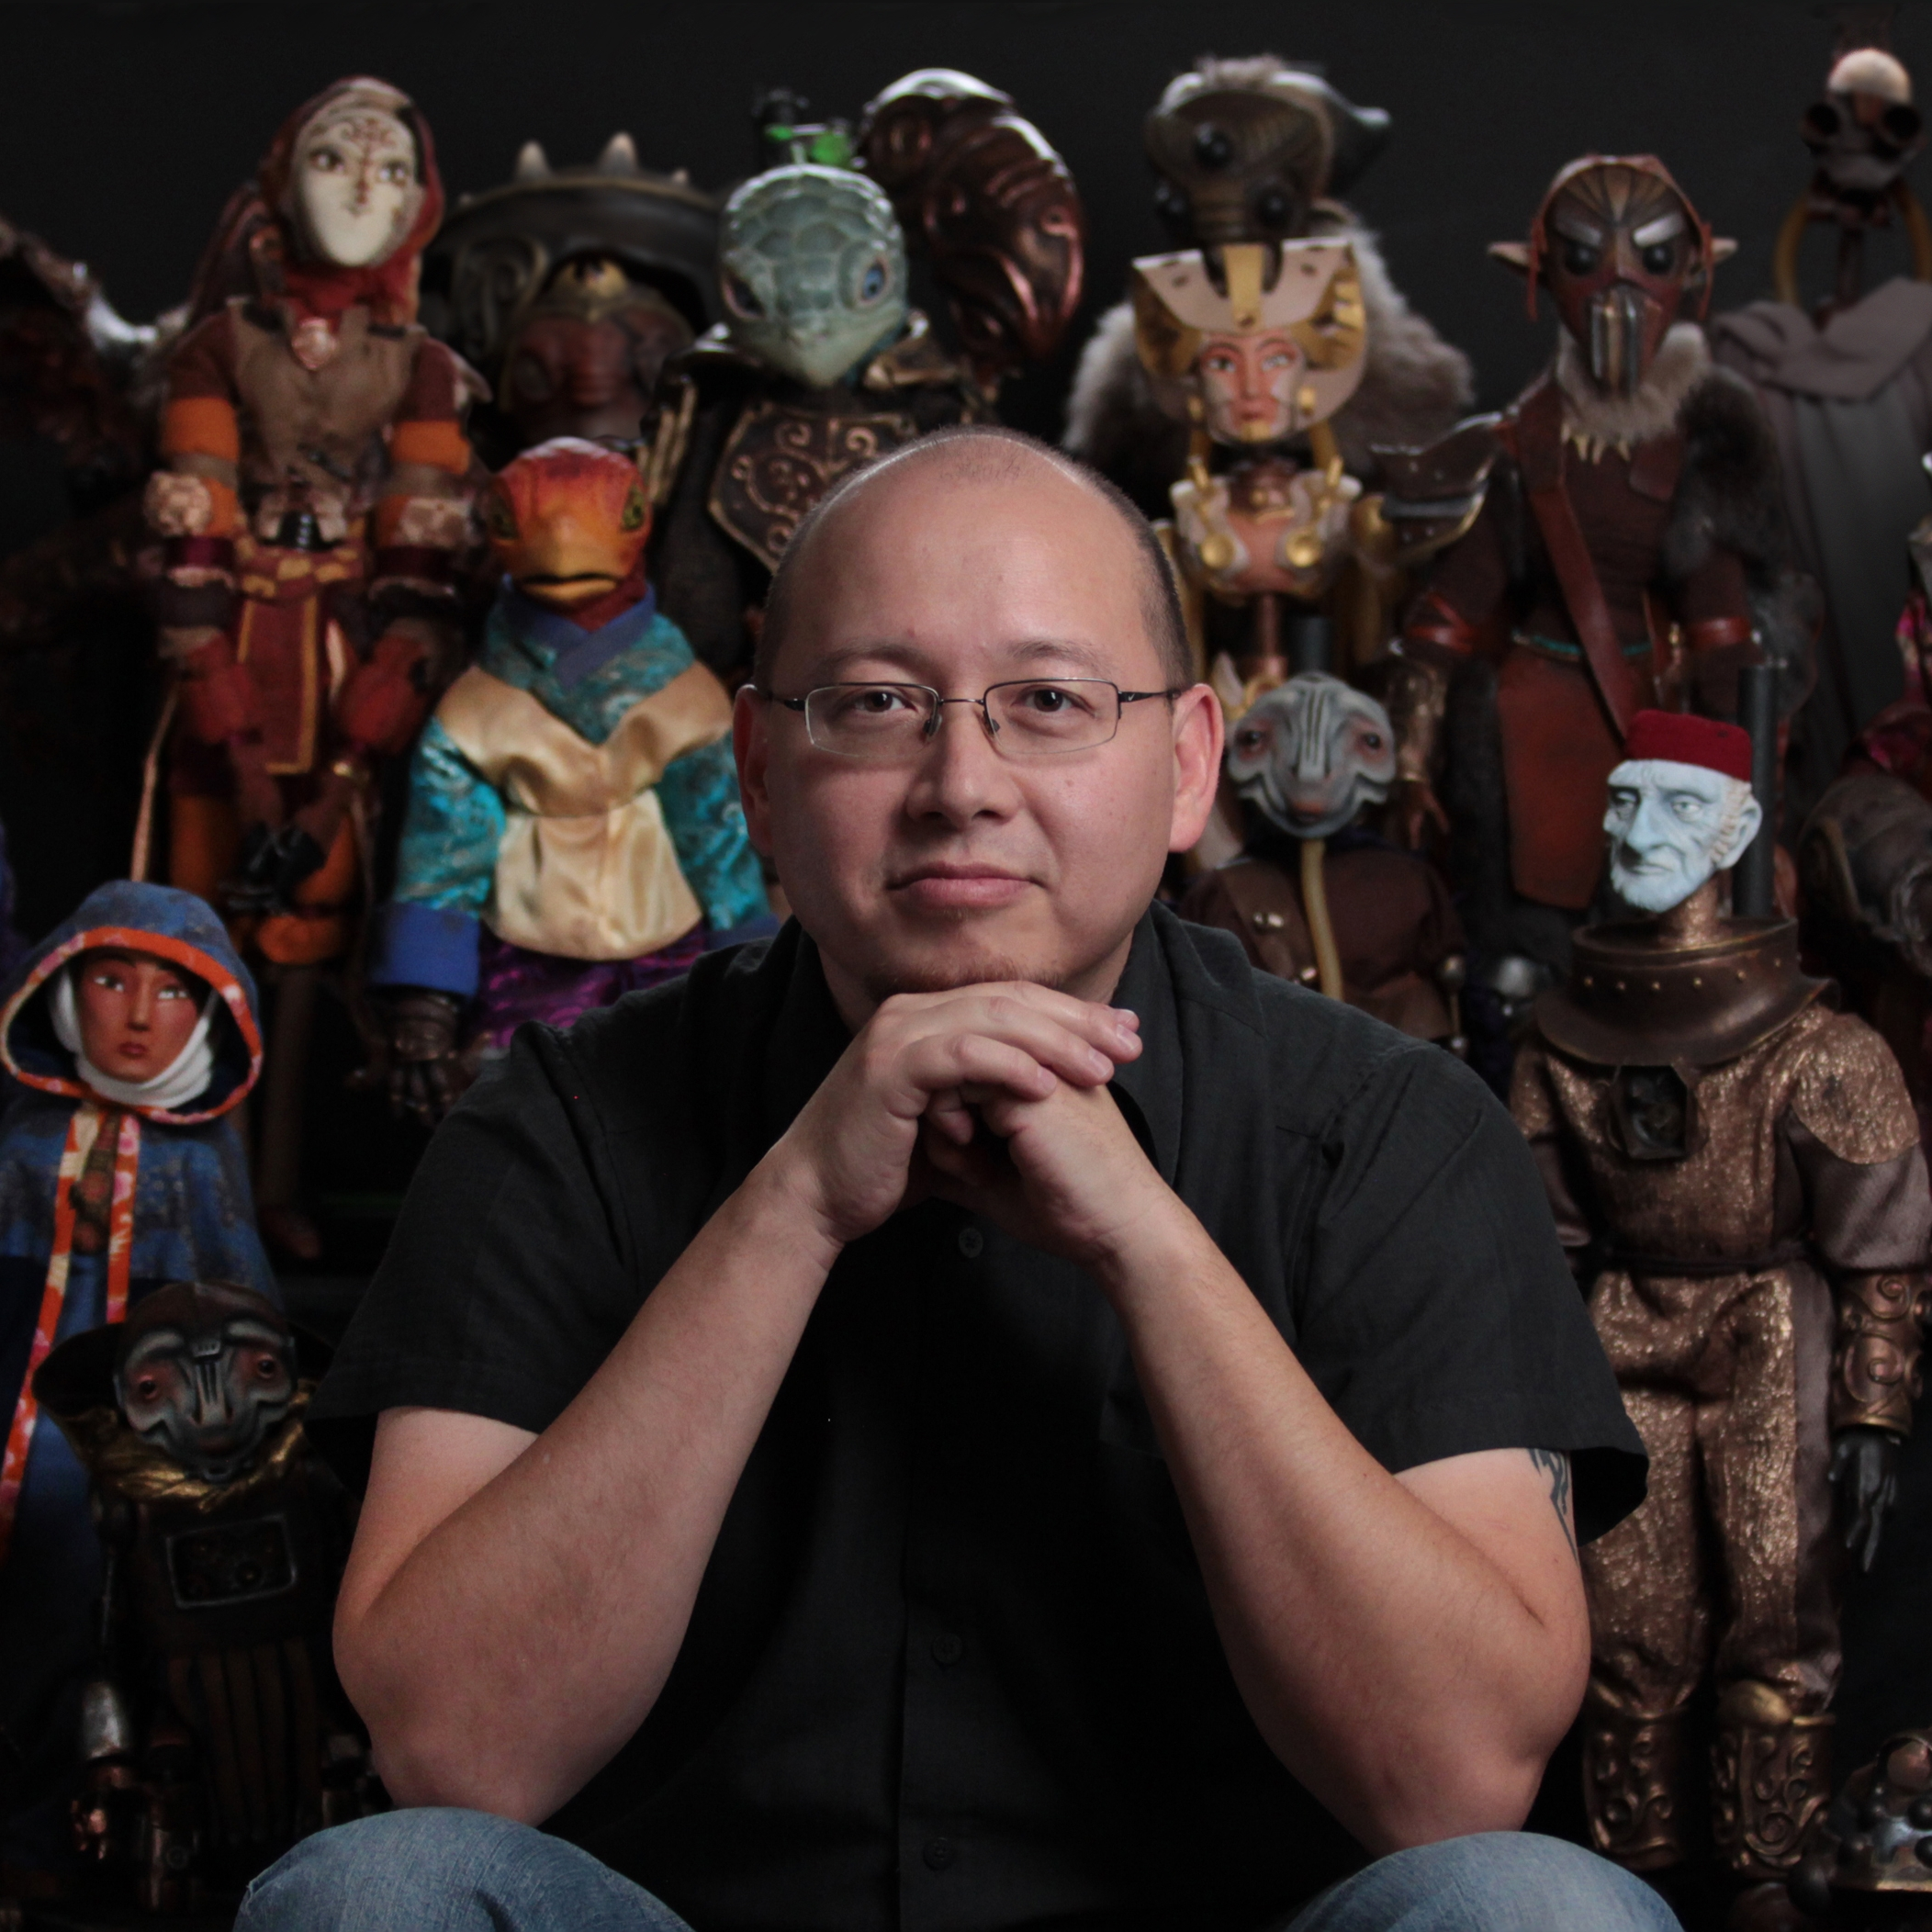 """Sam Koji Hale - Sam Koji Hale is an award-winning director, animator and puppeteer. Sam made his first short film for Jim Henson's daughter Heather called """"Yamasong"""". Seven years later he made the feature """"Yamasong: March of Hollows,"""" produced by Dark Dunes Productions. Sam has produced numerous puppet short films including award-winners """"Narrative of Victor Karloch"""", """"Hitori"""" and """"Lessons Learned."""" He continues to produce films for Heather's Handmade Puppet Dreams series with their new distribution partner at Jim Henson Company, bringing these films to online audiences. Sam's other credits include art director for Cartoon Network's Annoying Orange, Disney Jr's Bite-Sized Adventures of Sam Sandwich (lead VFX artist) and Disney's Team Smithereen (associate producer)."""